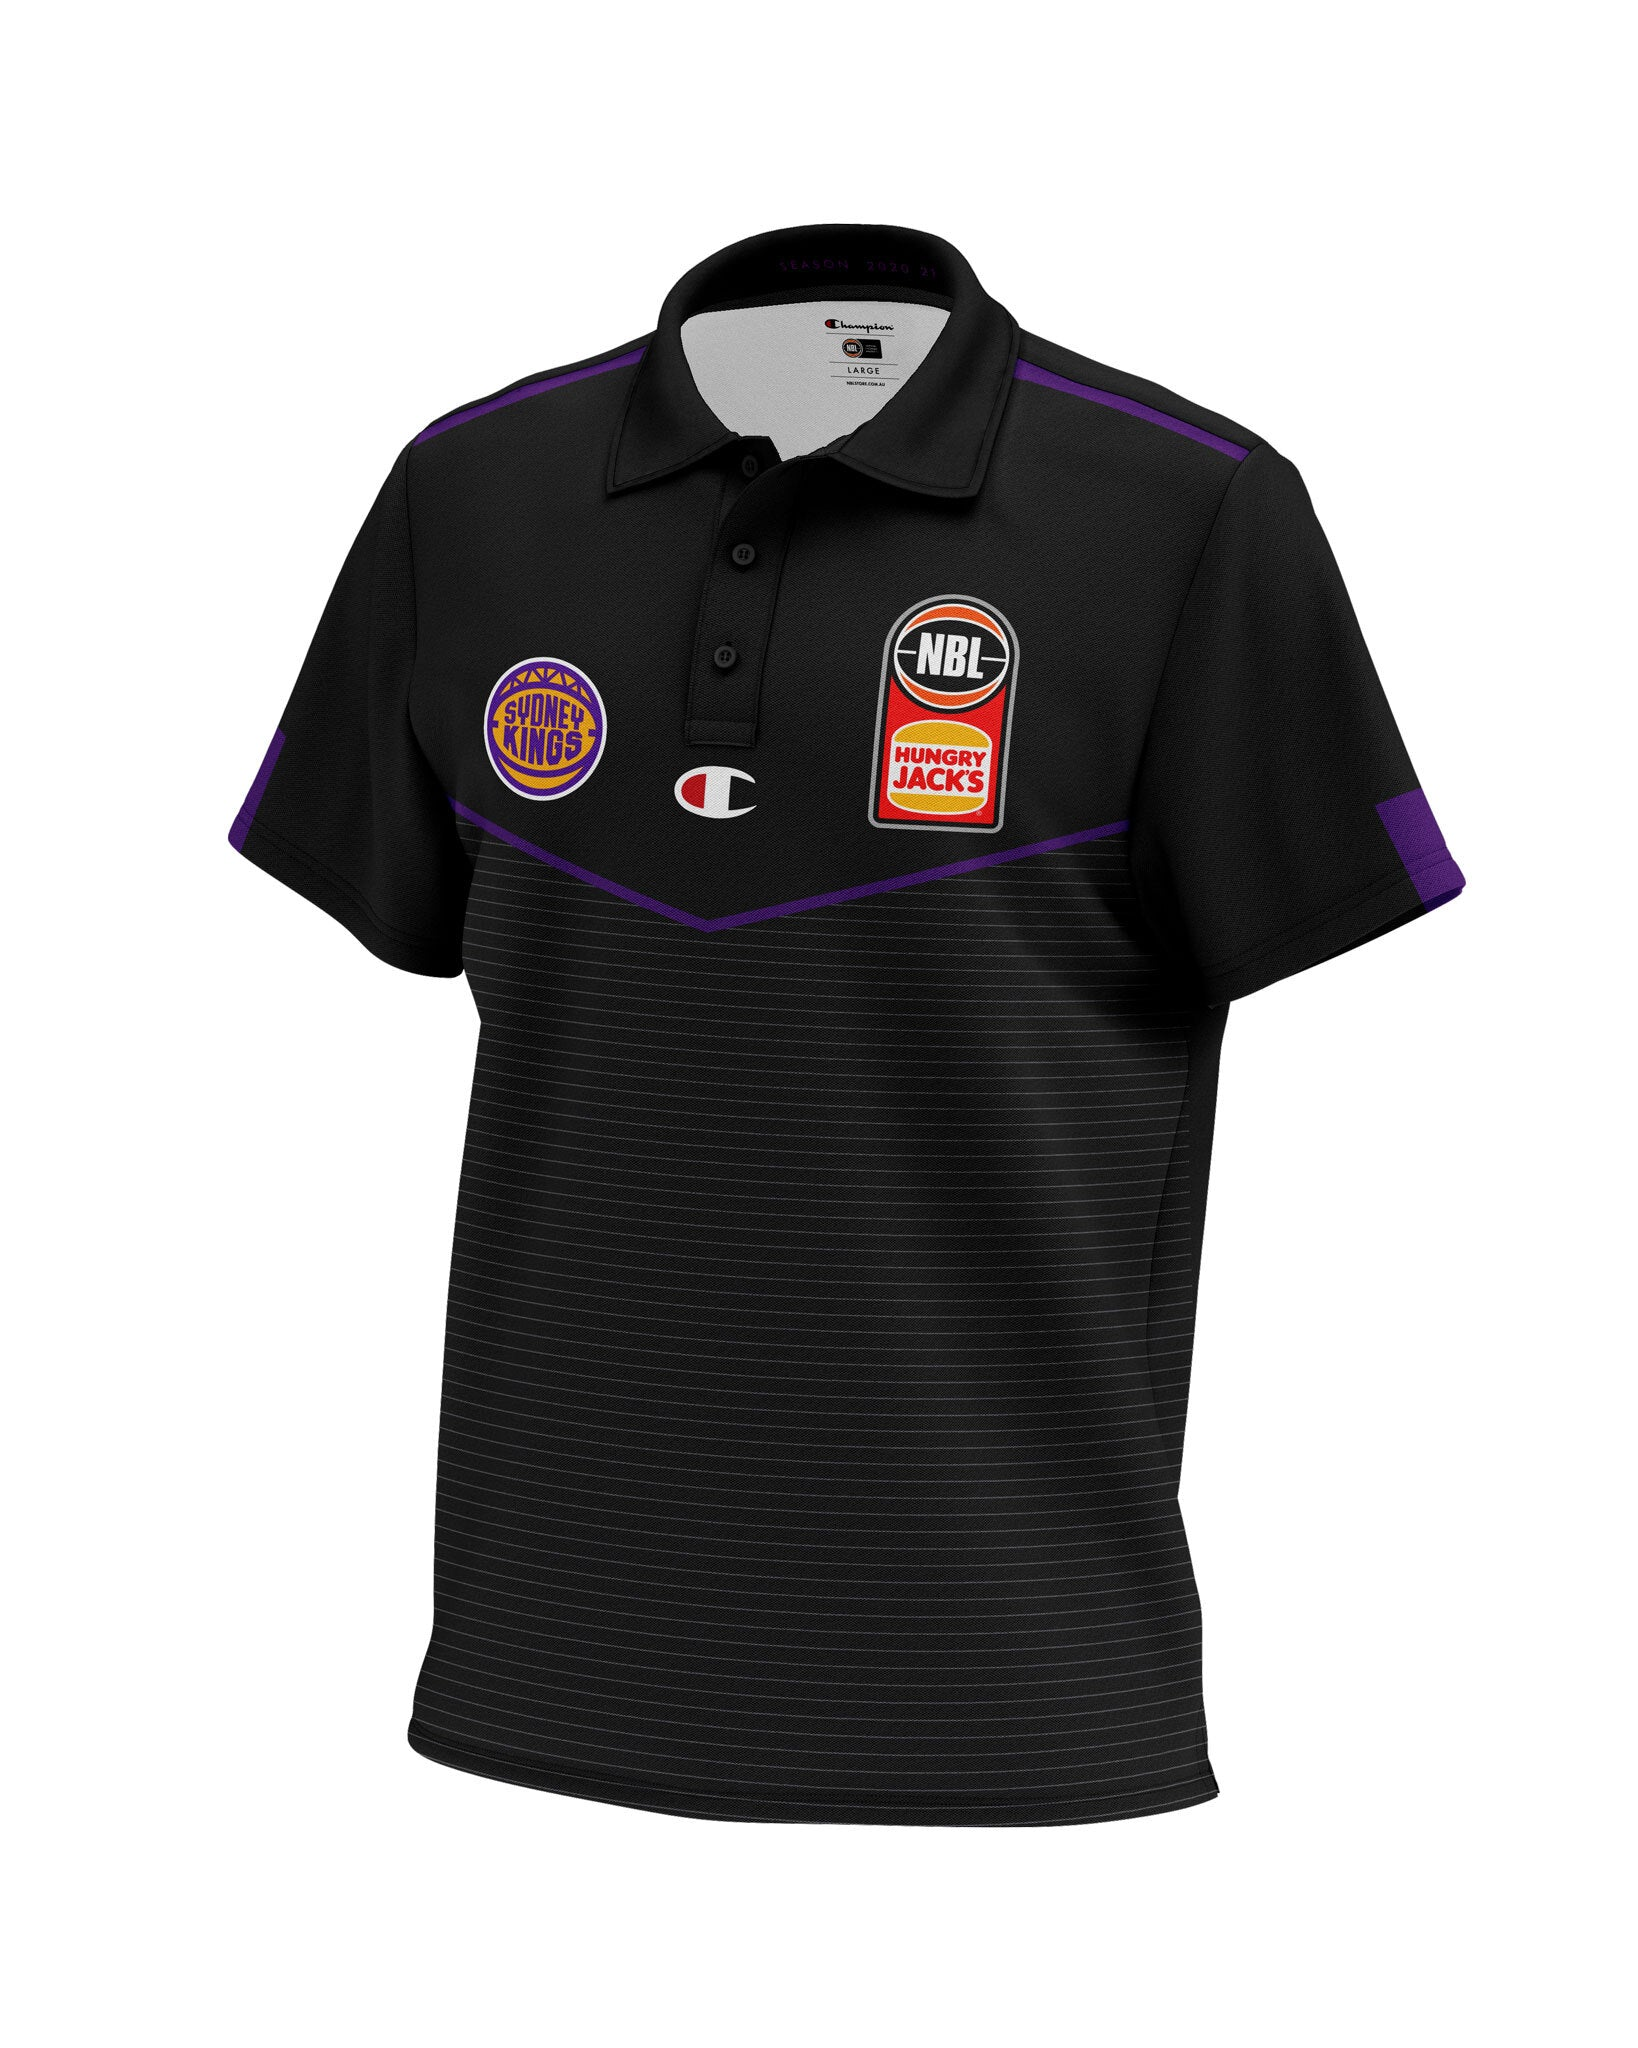 Sydney Kings 20/21 Mens Sublimated Polo